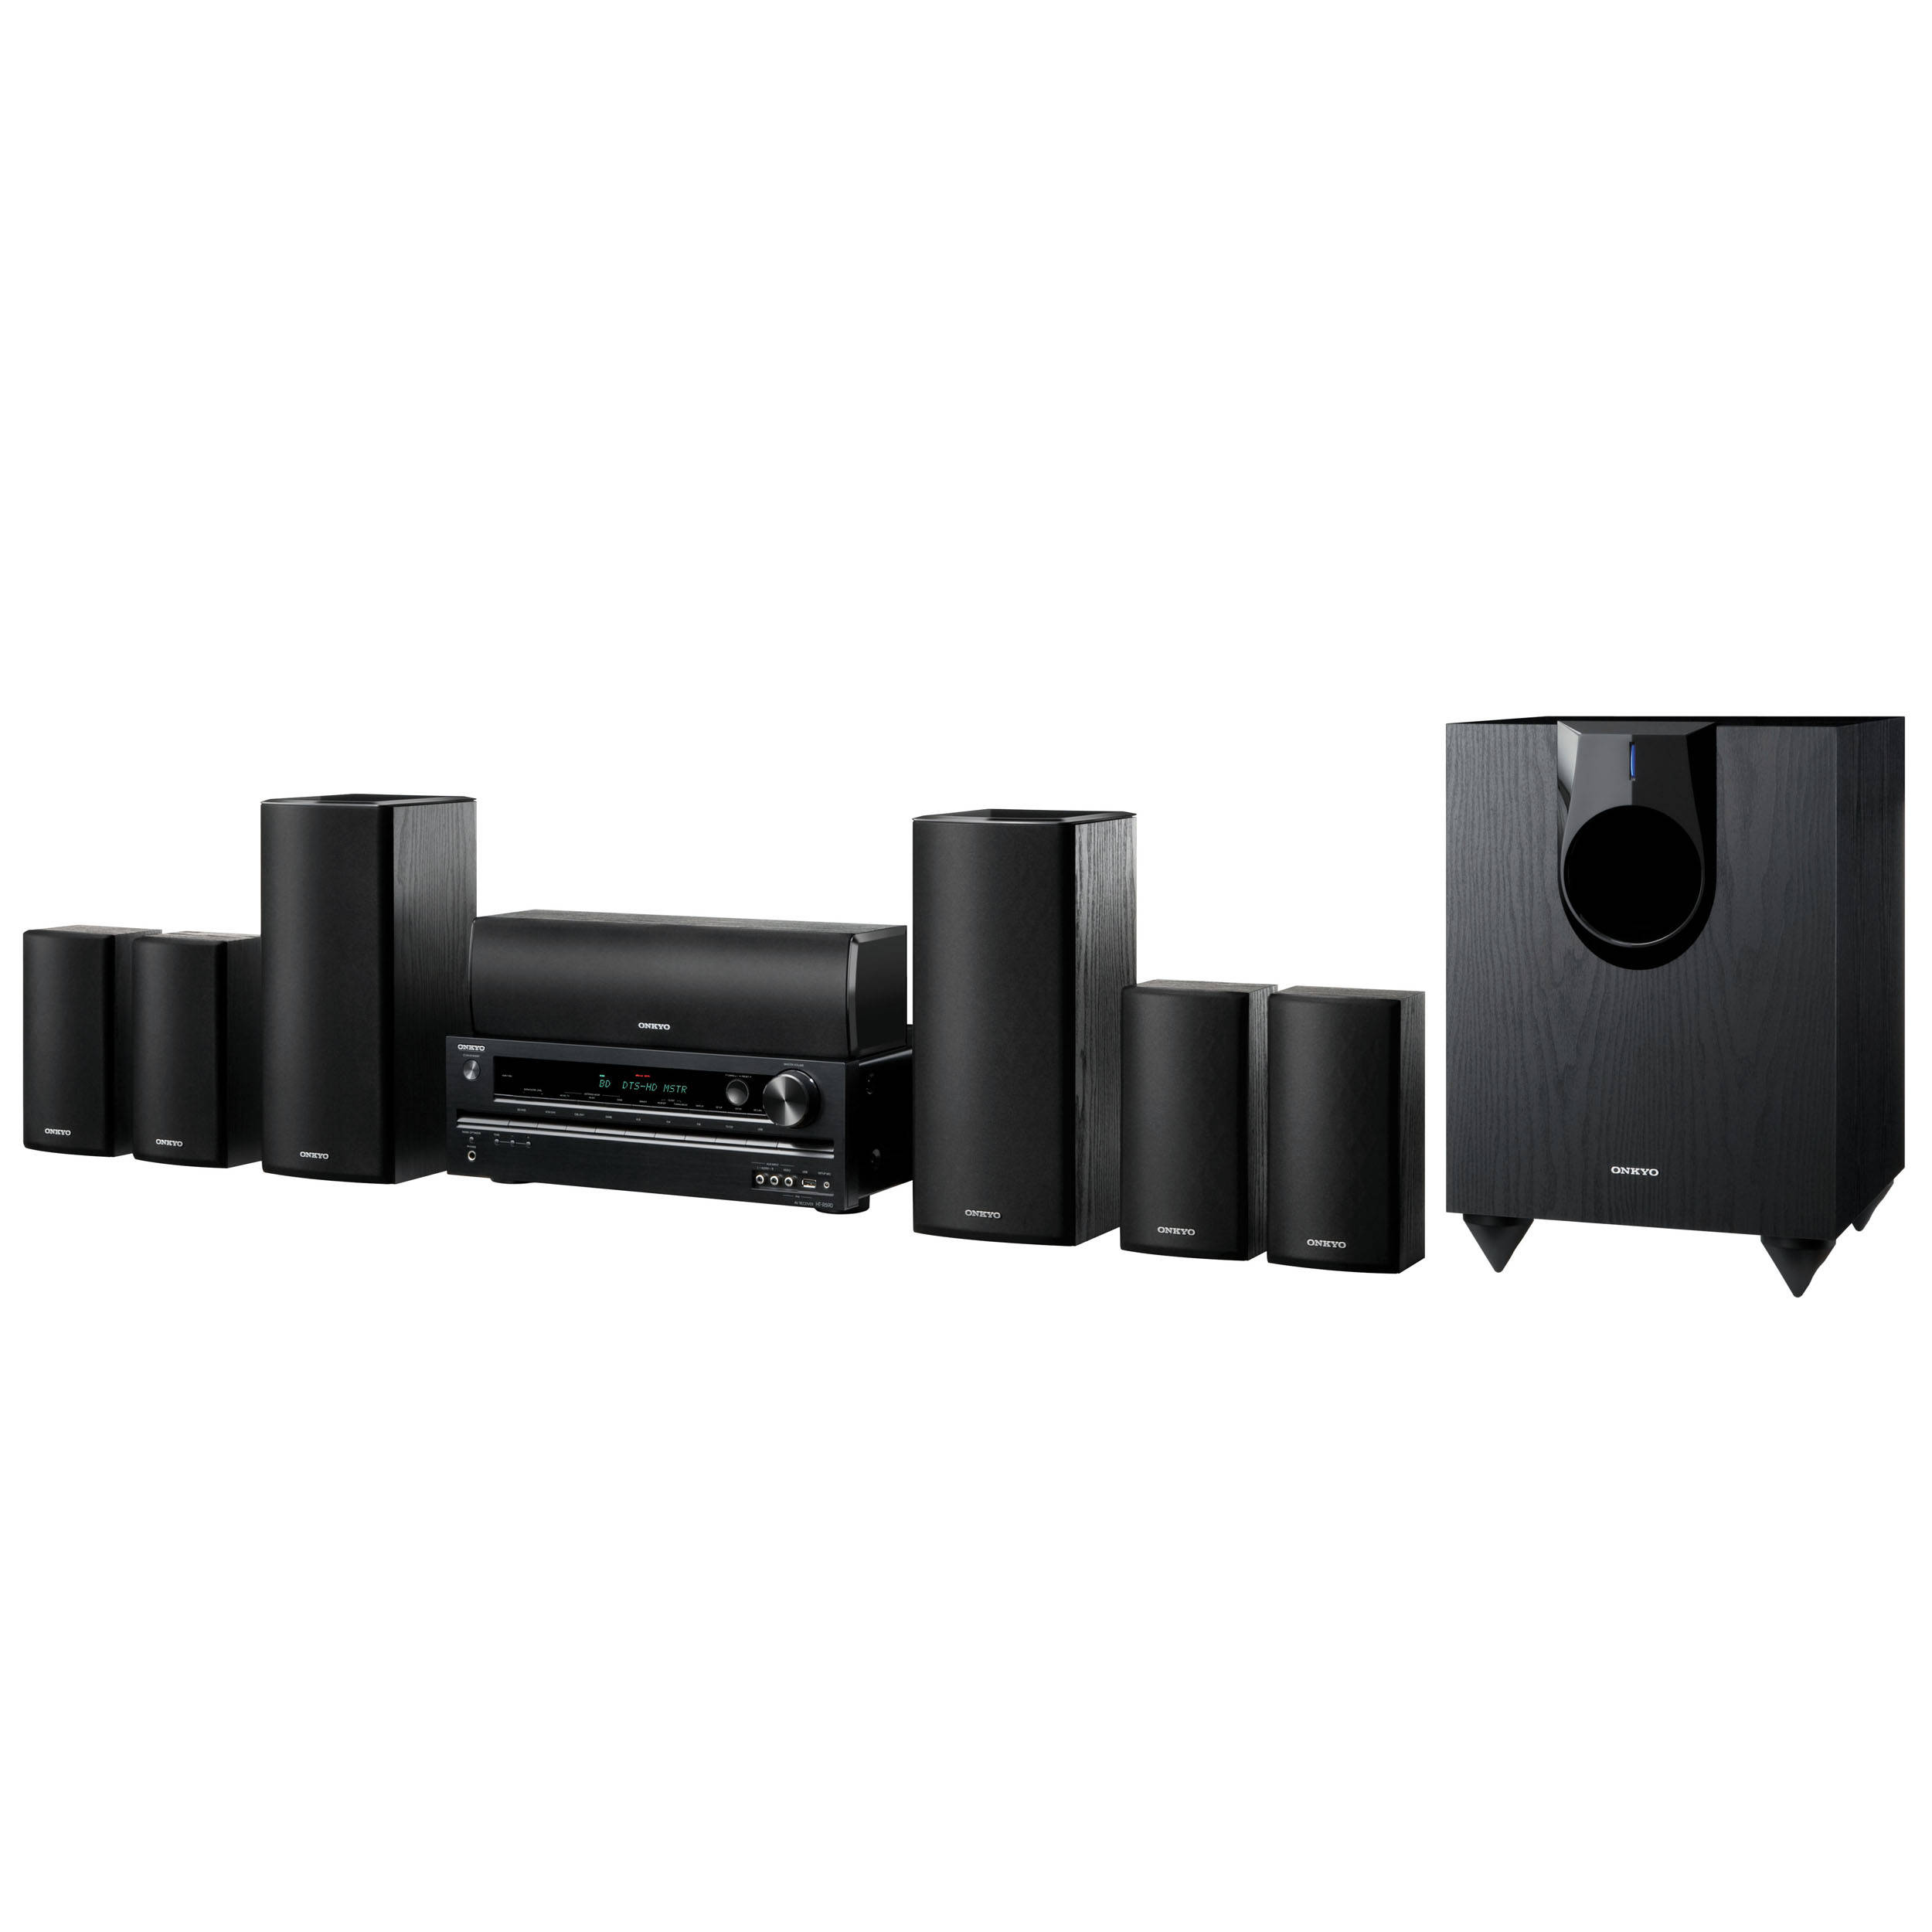 onkyo ht s5400 7 1 home theater system ht s5400 b h photo video. Black Bedroom Furniture Sets. Home Design Ideas